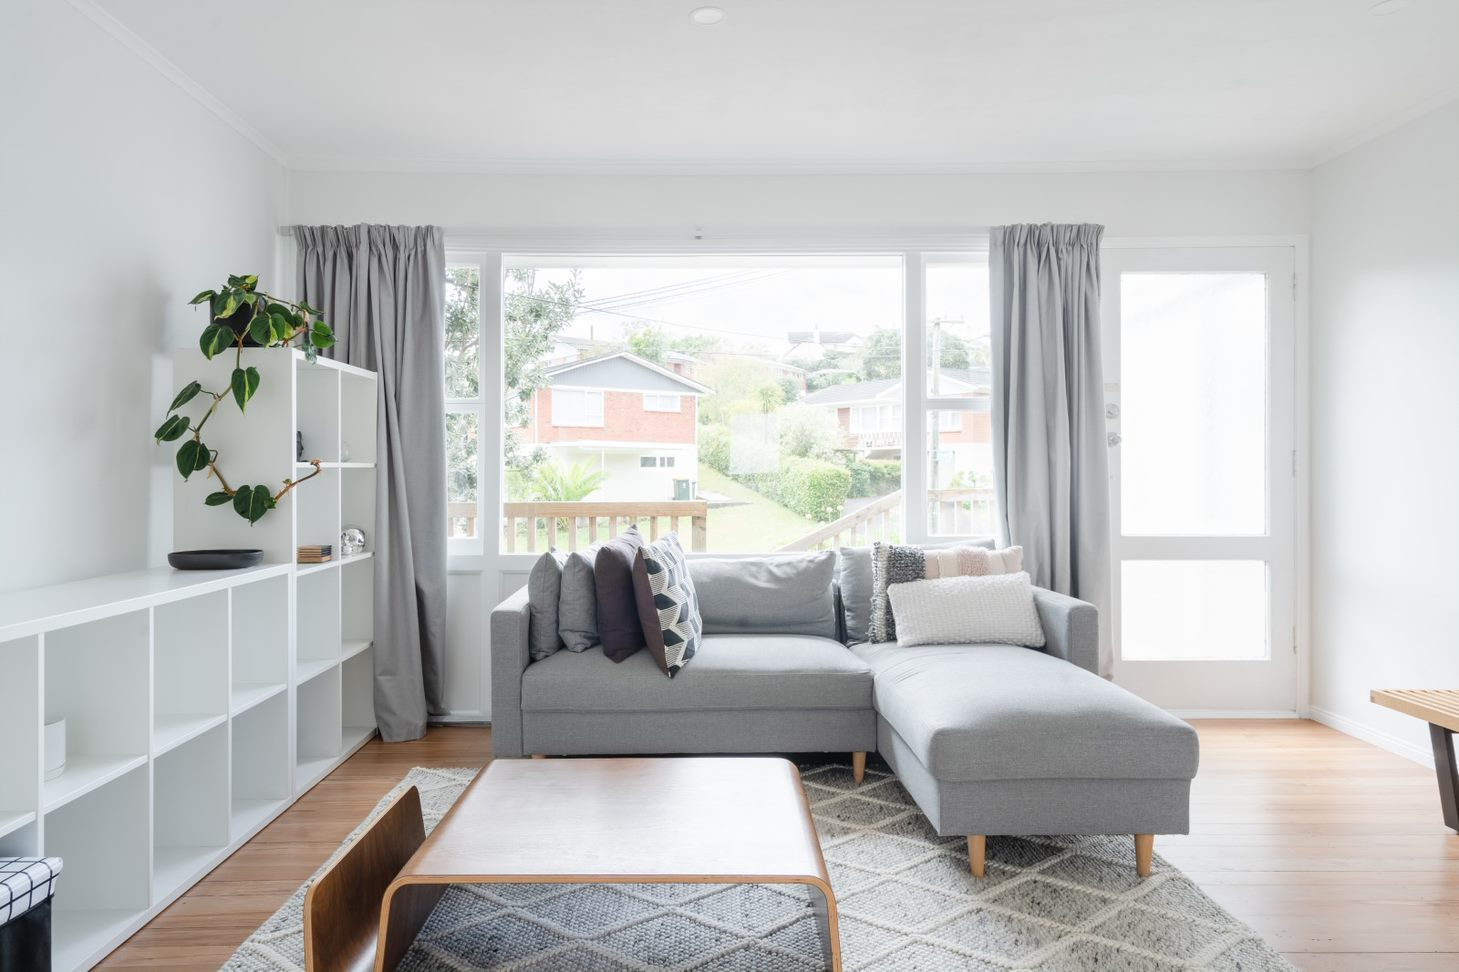 living room after full house renovation, Cockle bay, Auckland